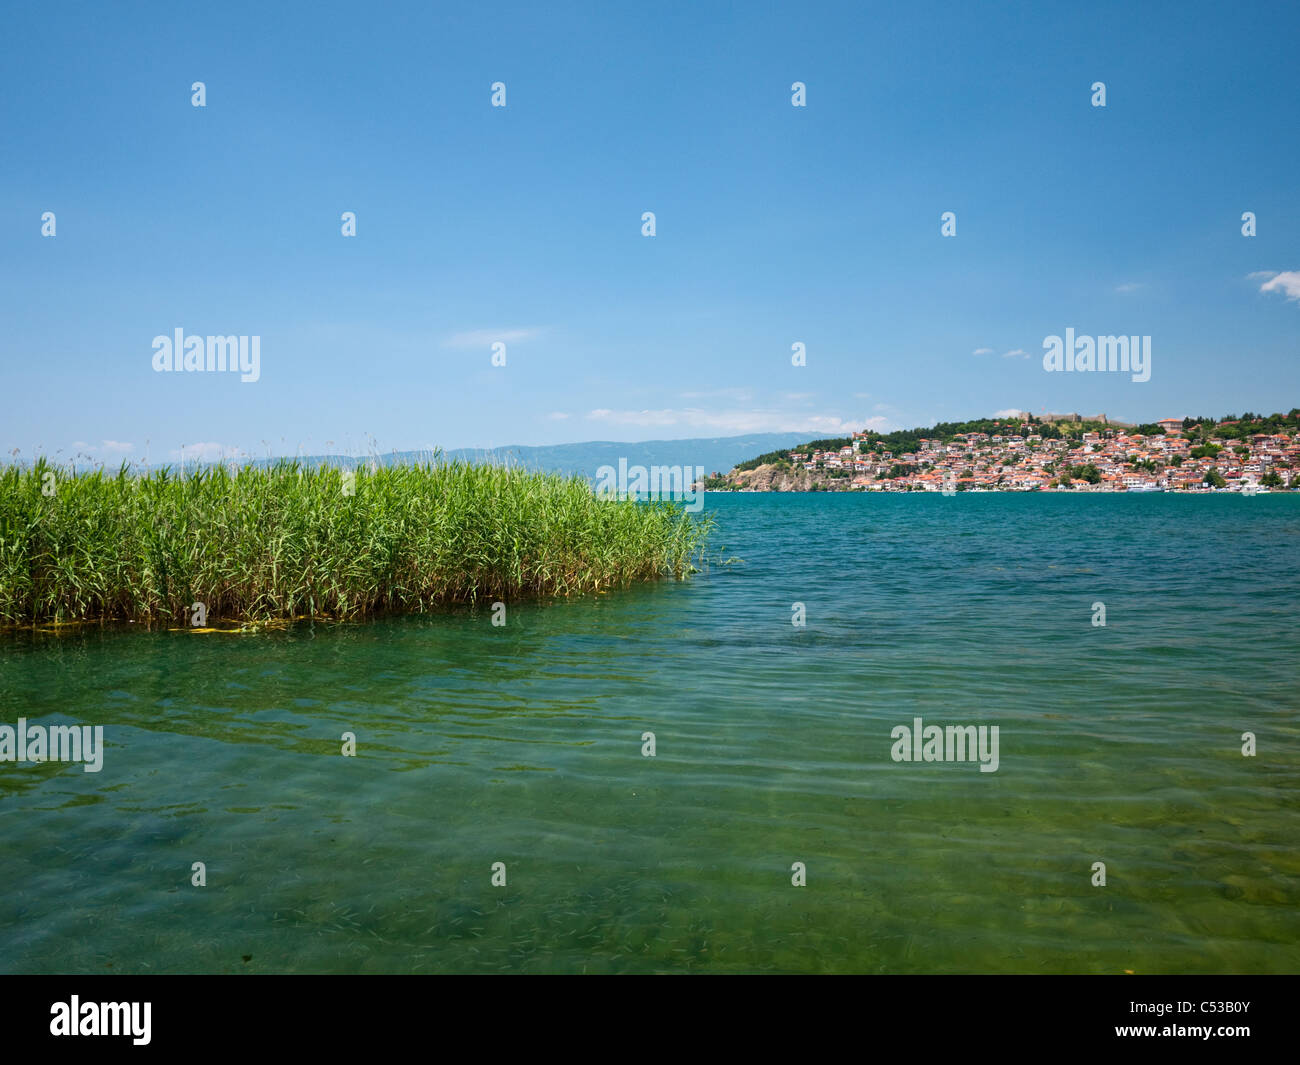 The UNESCO World Heritage site of Ohrid lake and town in Macedonia - Stock Image